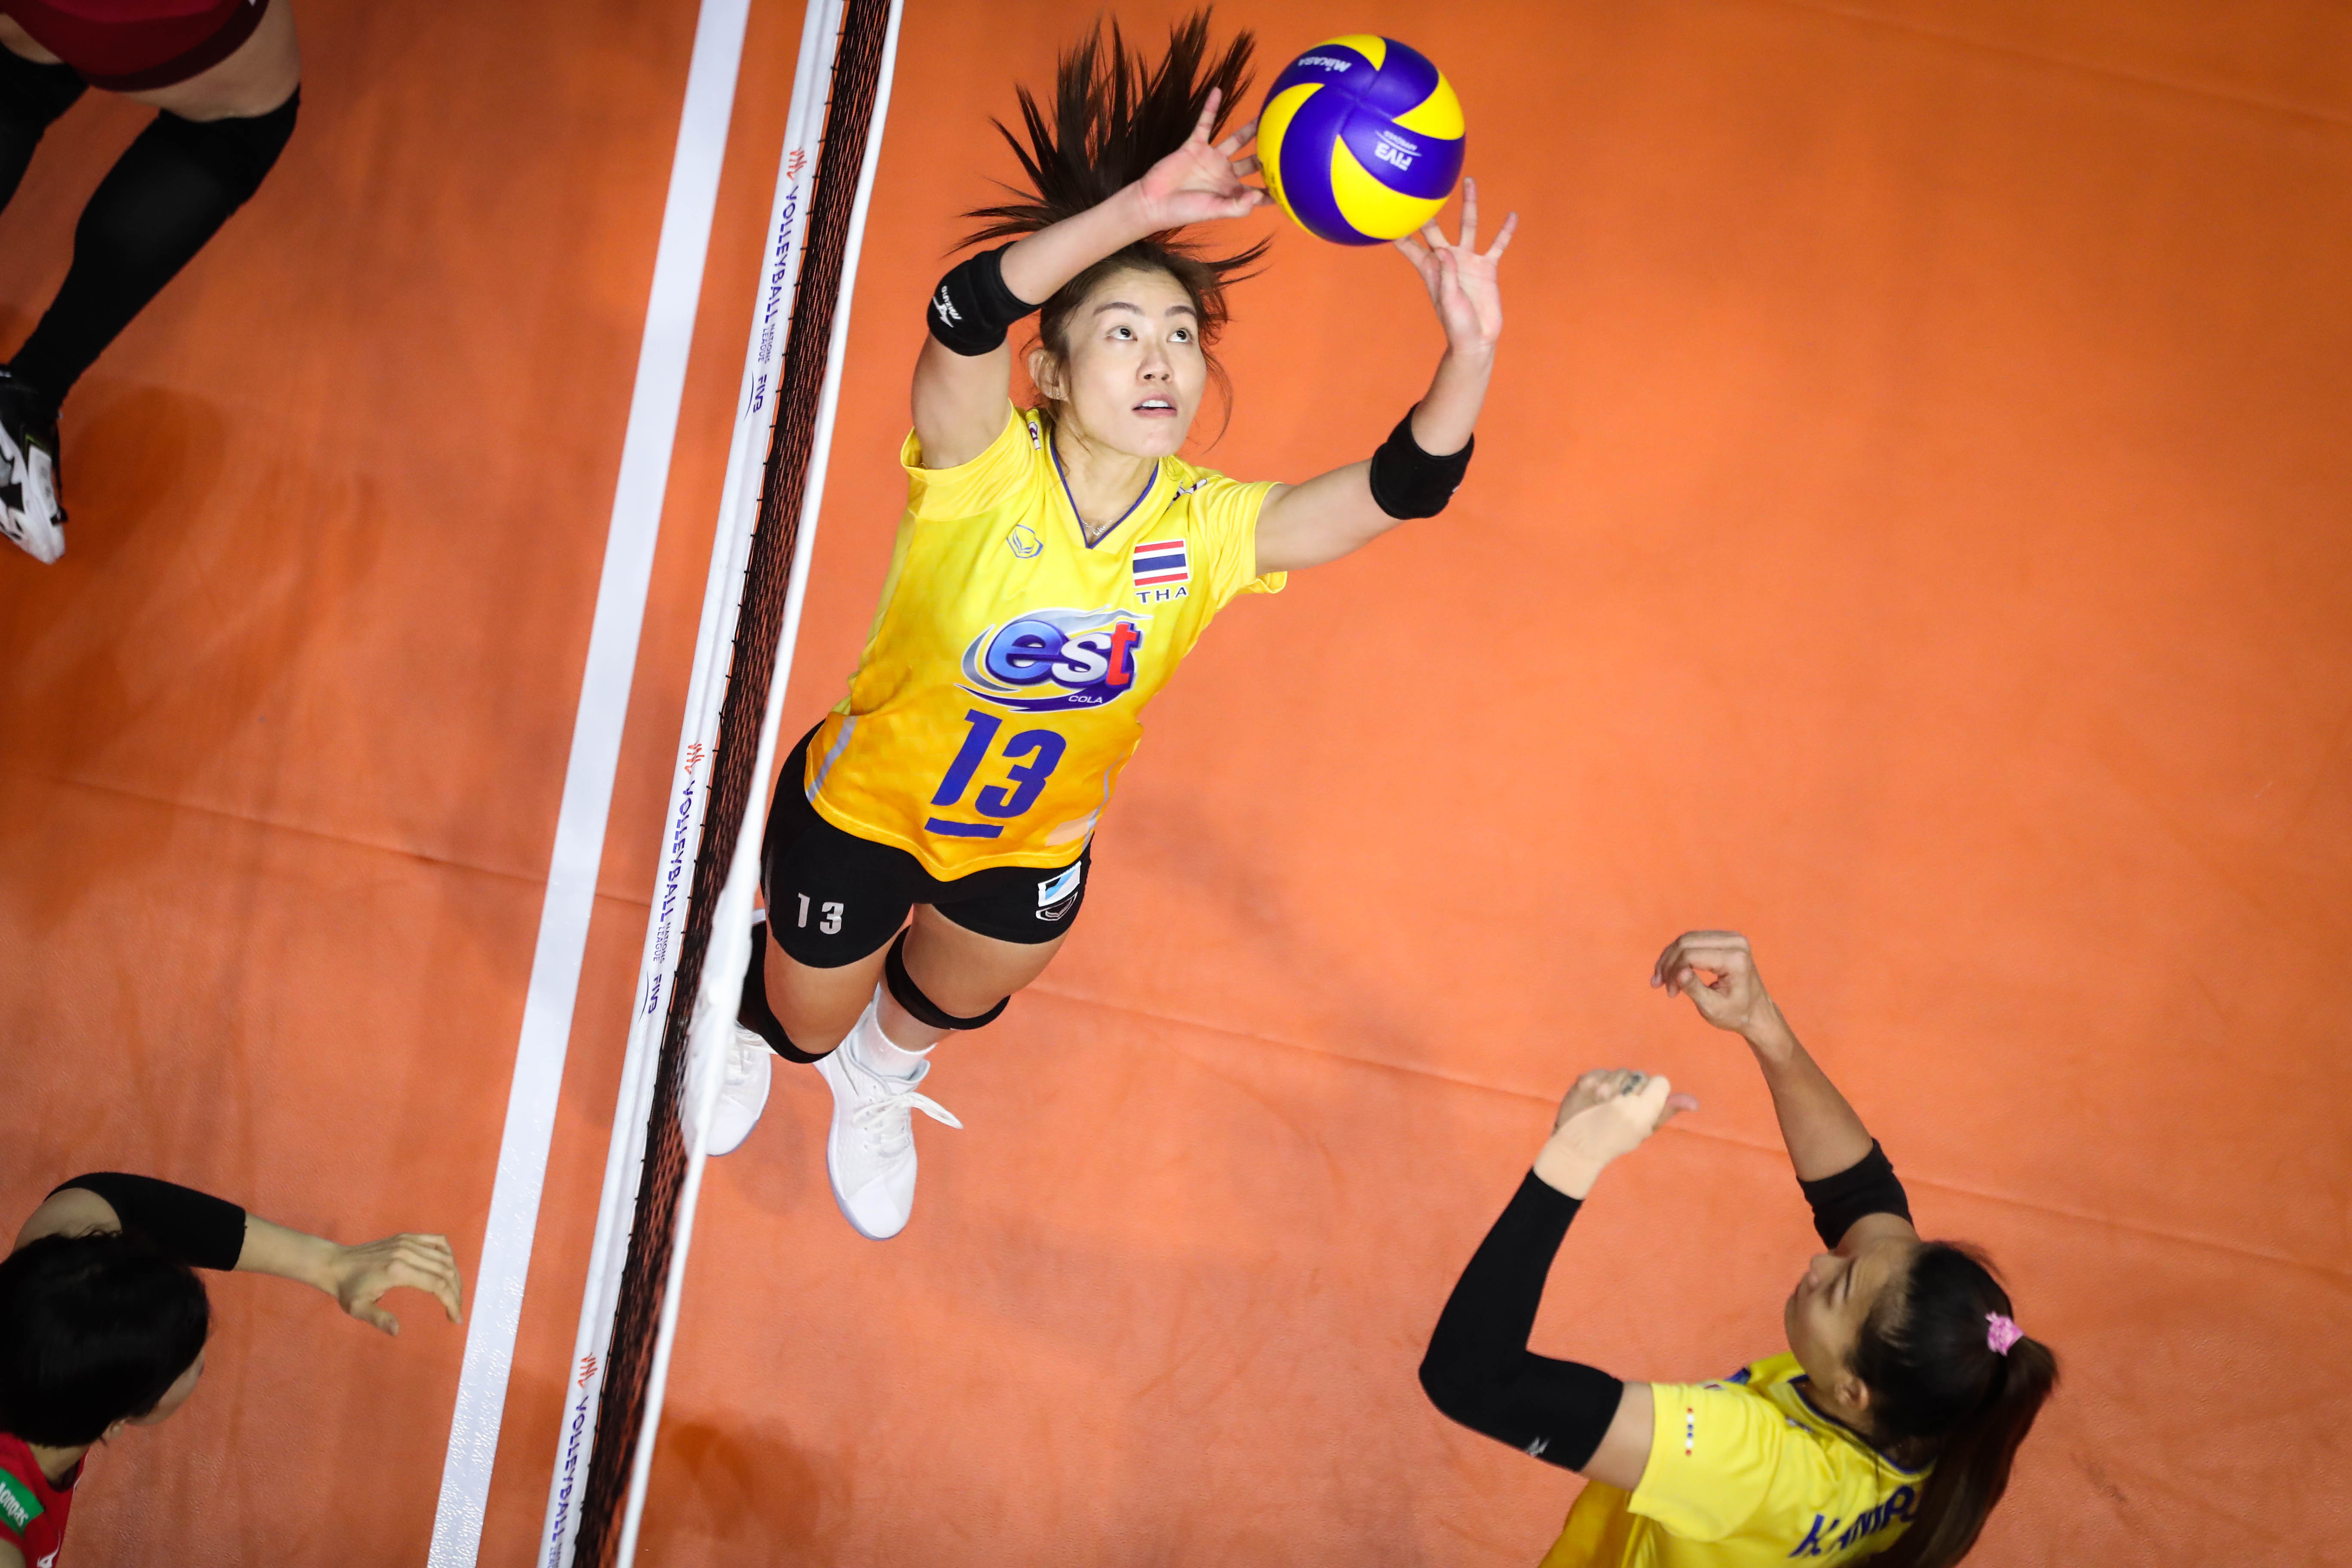 Seven Players To Watch Out For In The 2019 Southeast Asian Games Asian Volleyball Confederation